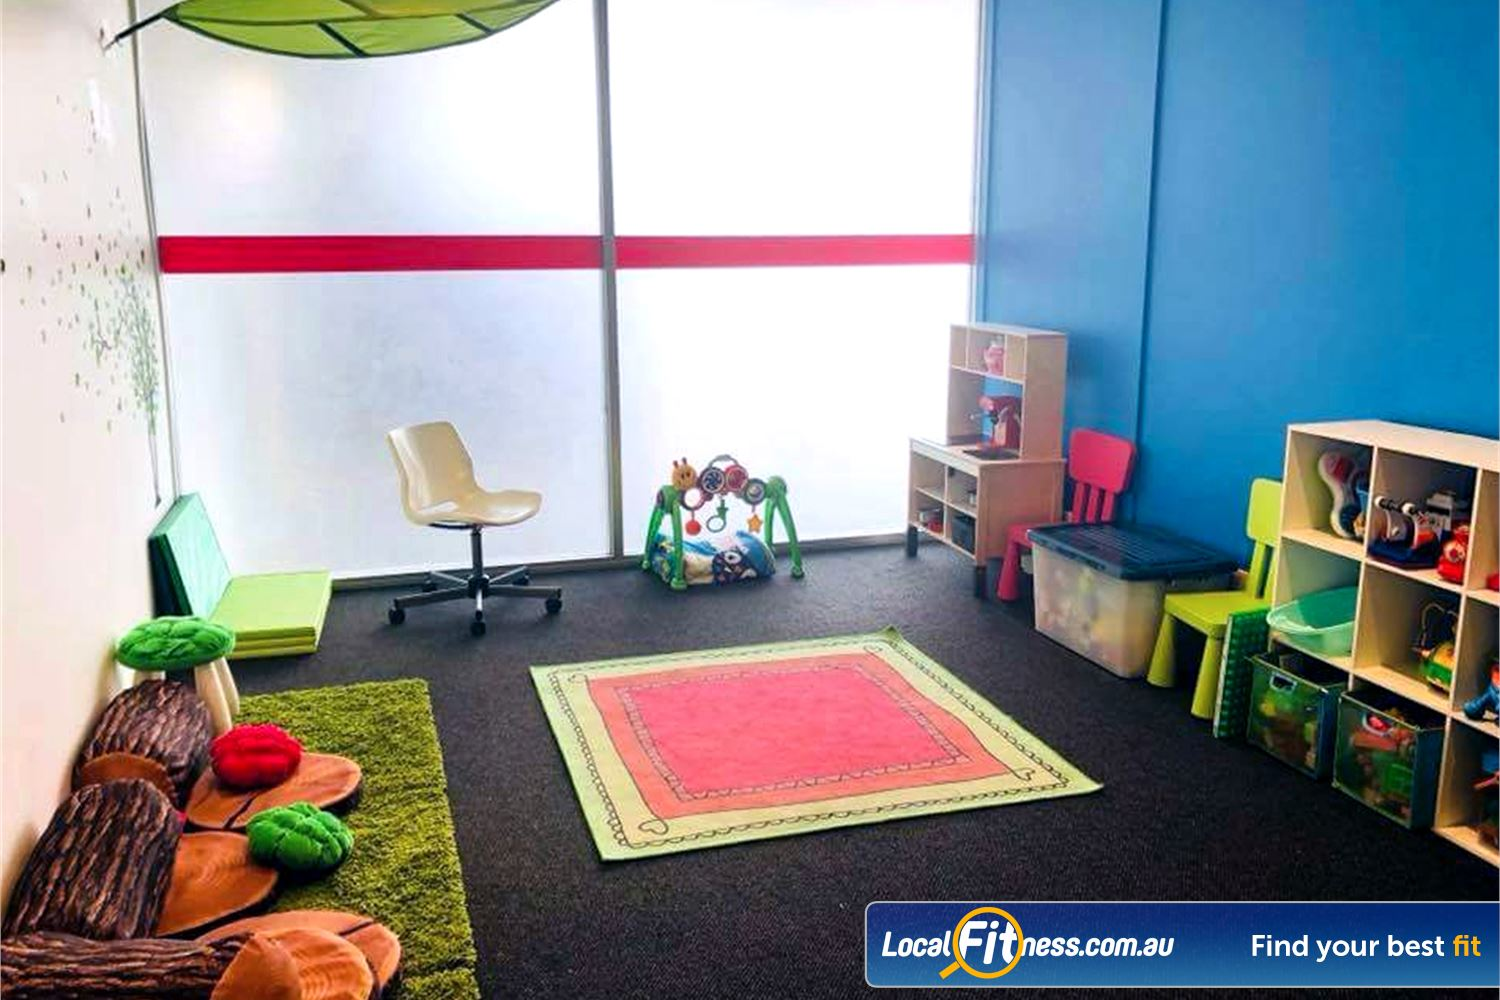 Fernwood Fitness Near Houghton Take advantage of our FREE St Agnes child care services.